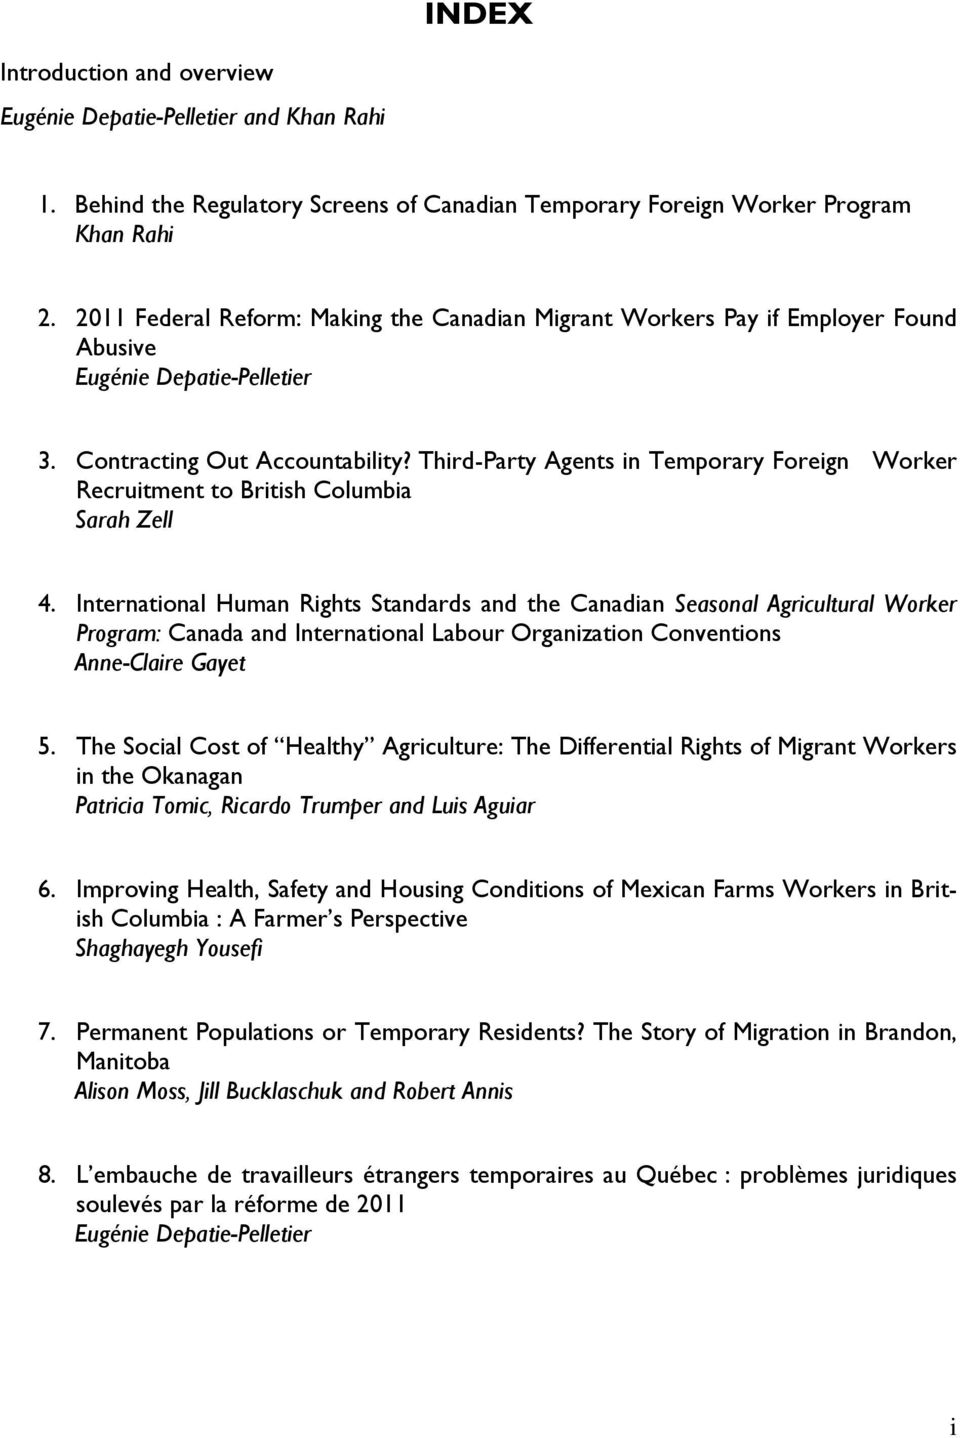 MISTREATMENT OF TEMPORARY FOREIGN WORKERS IN CANADA: OVERCOMING